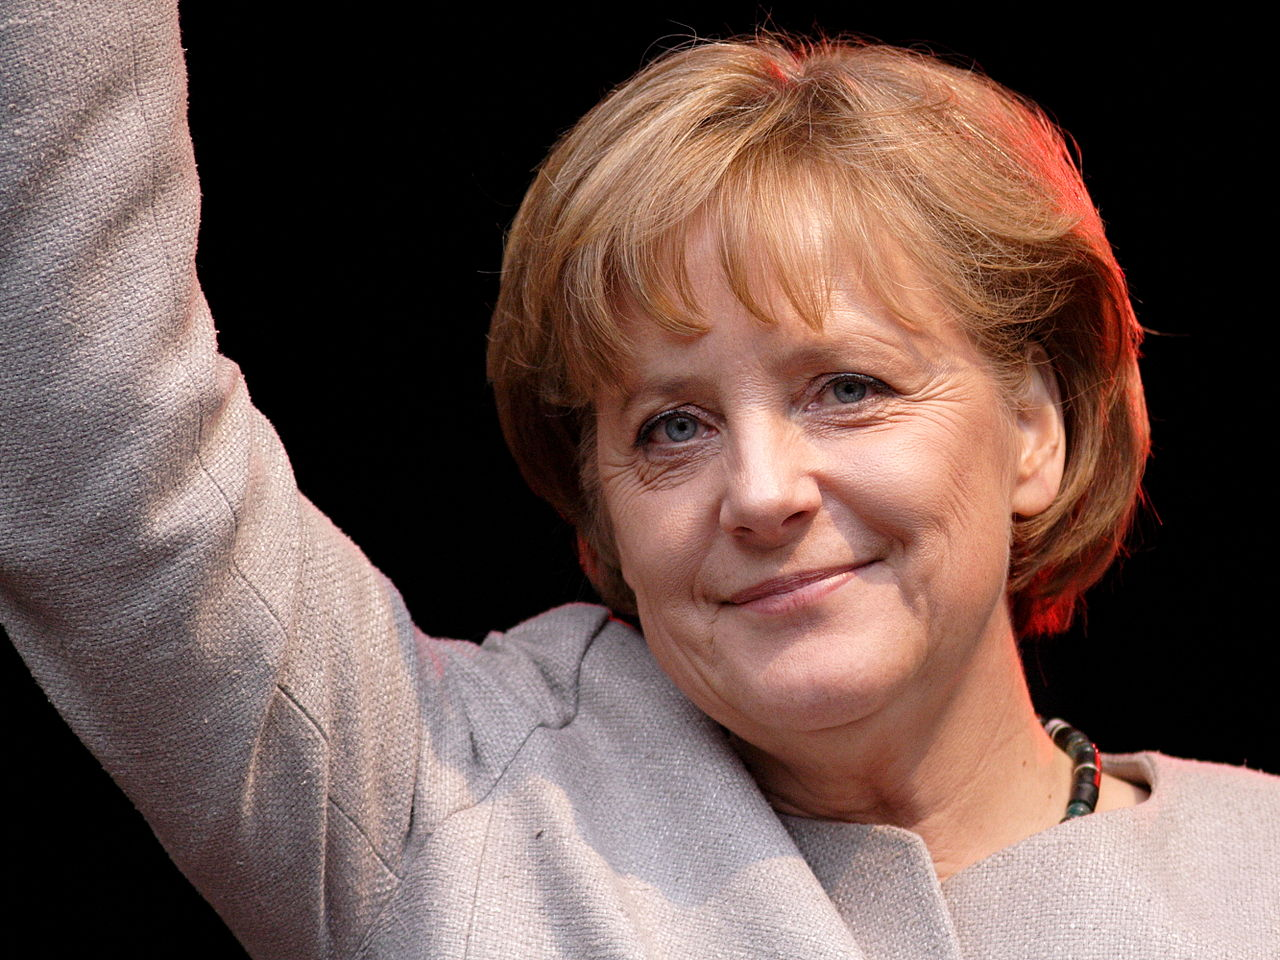 Angela Merkel recently won another term as Chancellor of Germany, but not without the emergence of a new far-right party (Photo courtesy of Wikimedia Commons)